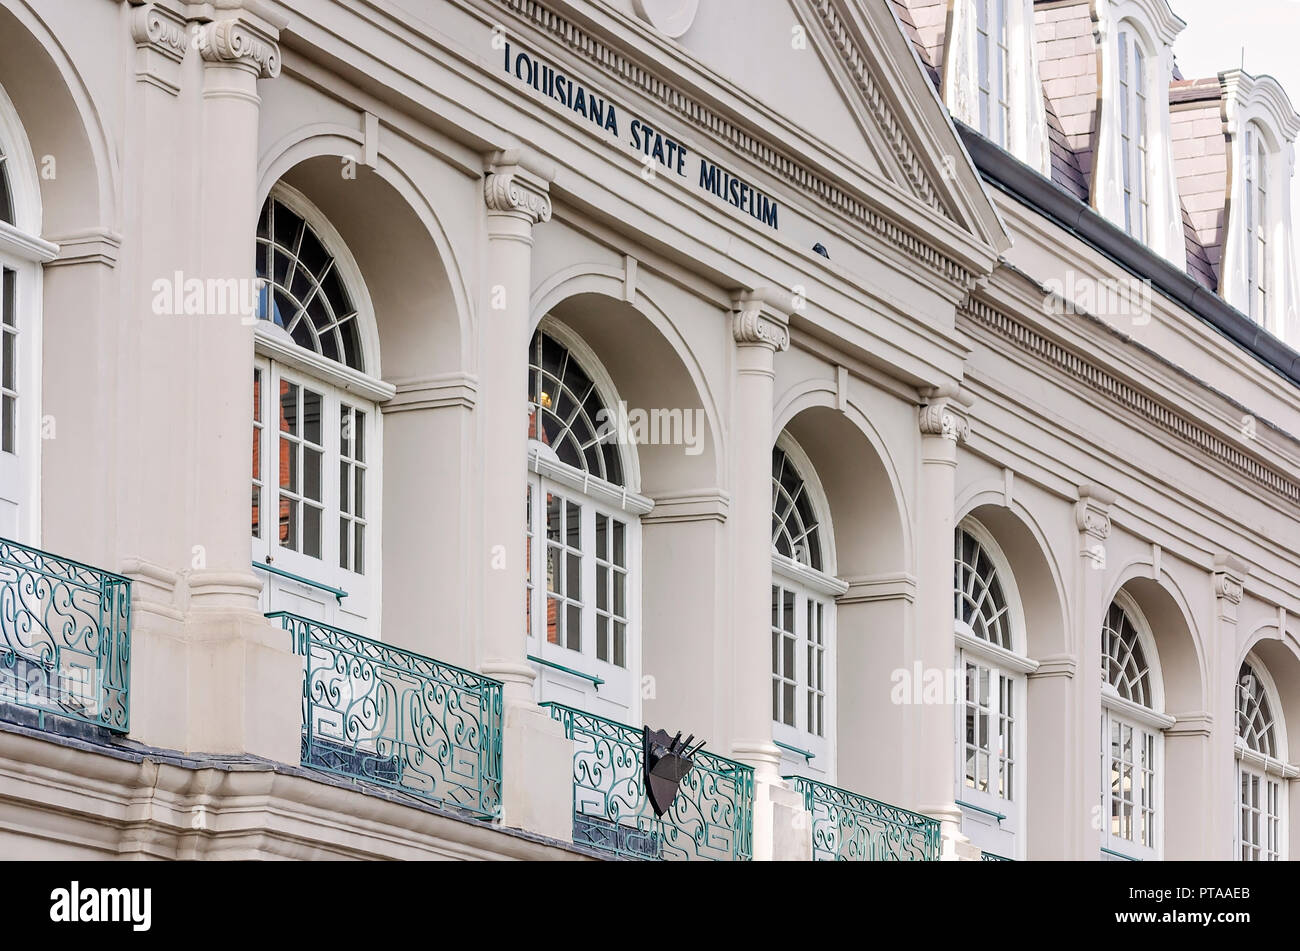 The Louisiana State Museum Cabildo is pictured in Jackson Square, November 11, 2015, in New Orleans, Louisiana. - Stock Image